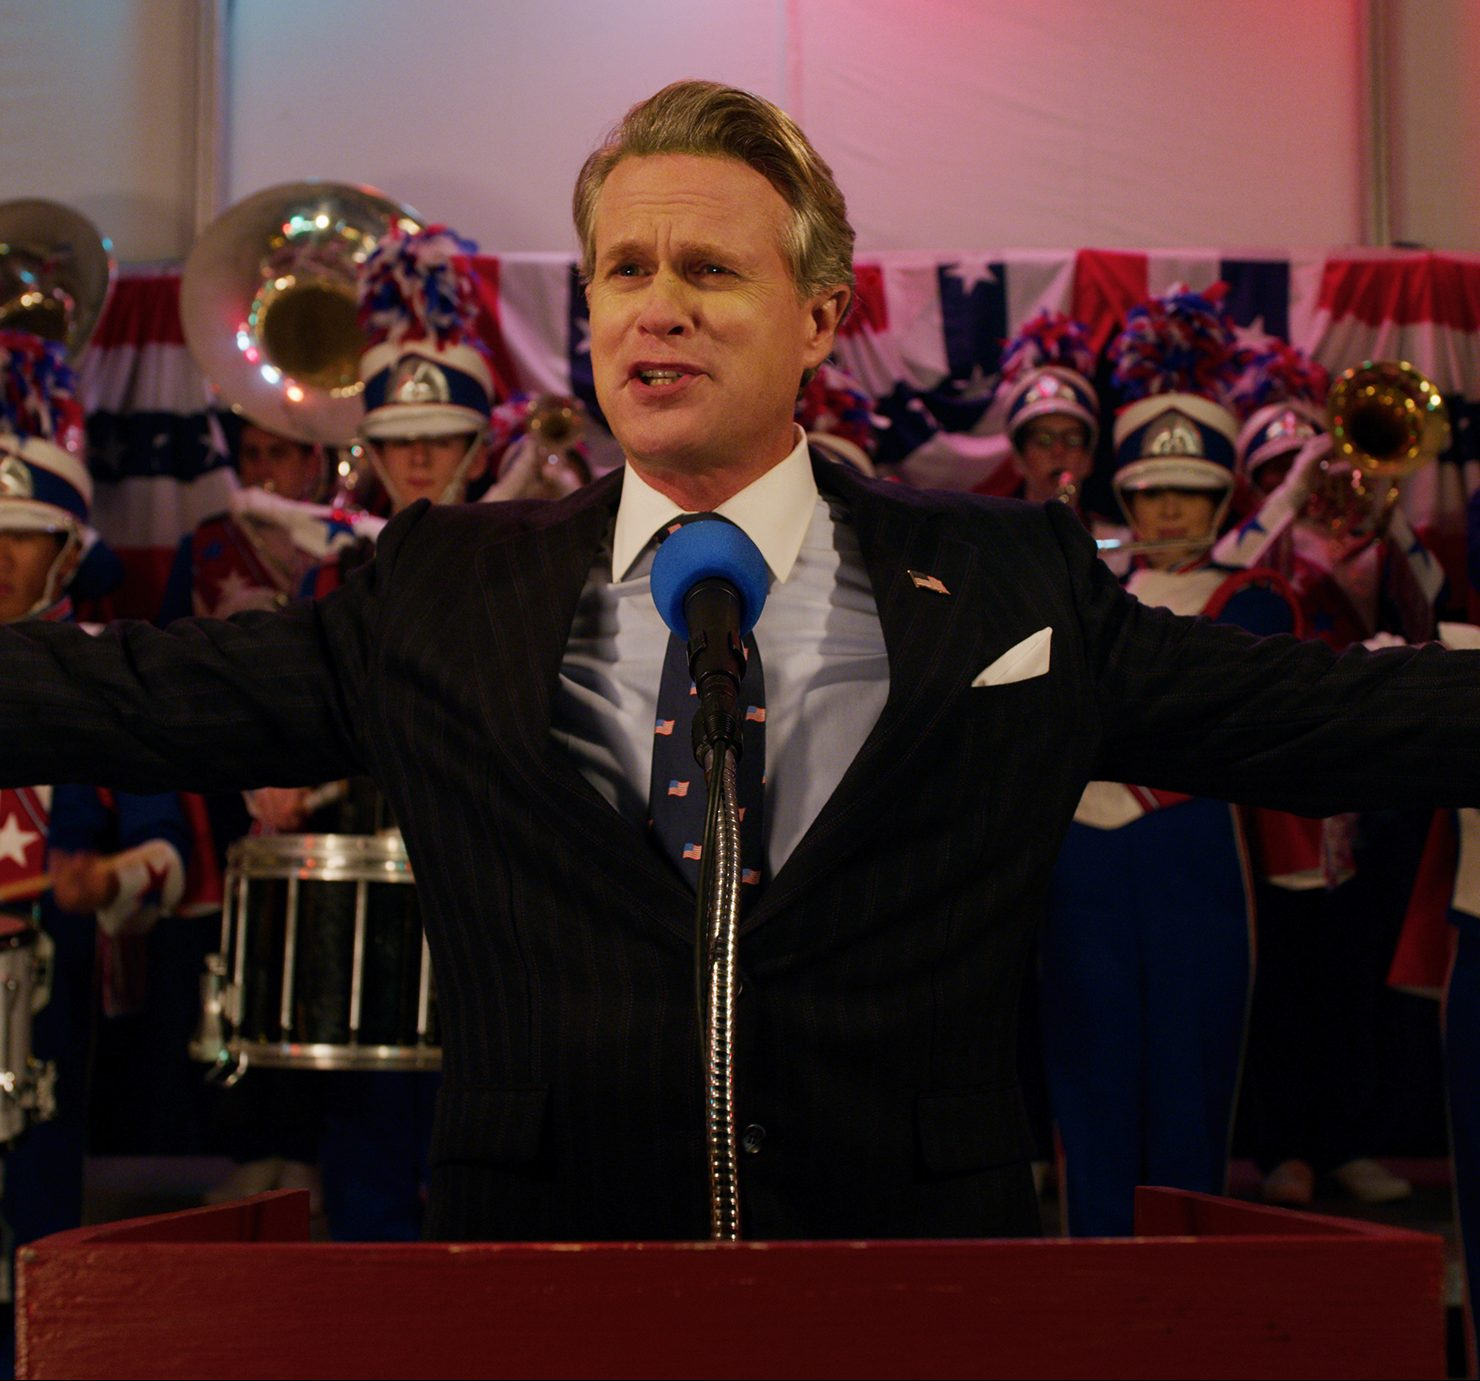 stranger things cary elwes kline 2 news e1603716166208 10 Things You Never Knew About Cary Elwes